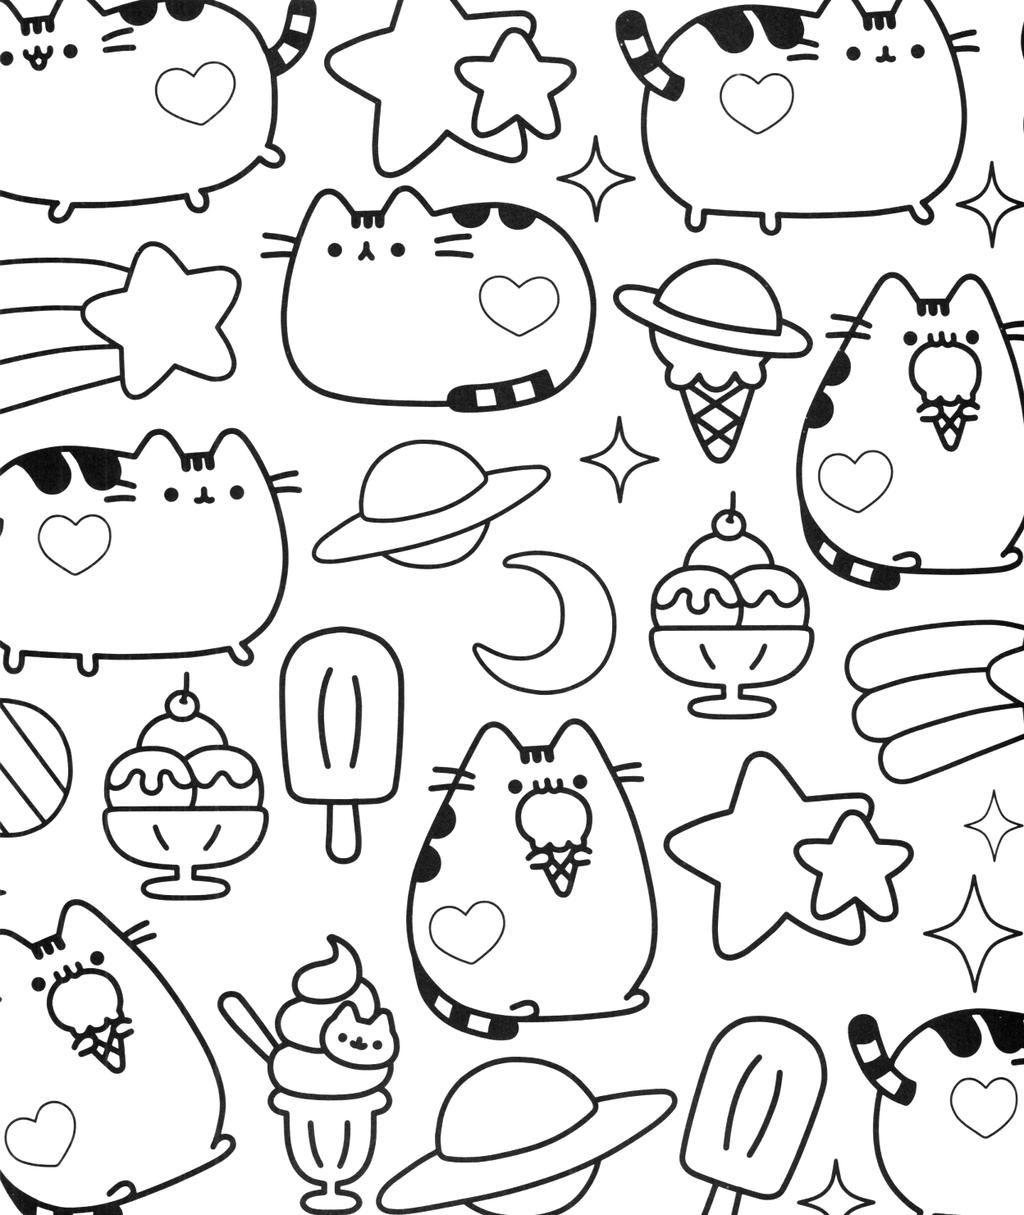 25 Inspired Photo Of Pusheen Cat Coloring Pages Entitlementtrap Com Pusheen Coloring Pages Emoji Coloring Pages Cute Coloring Pages